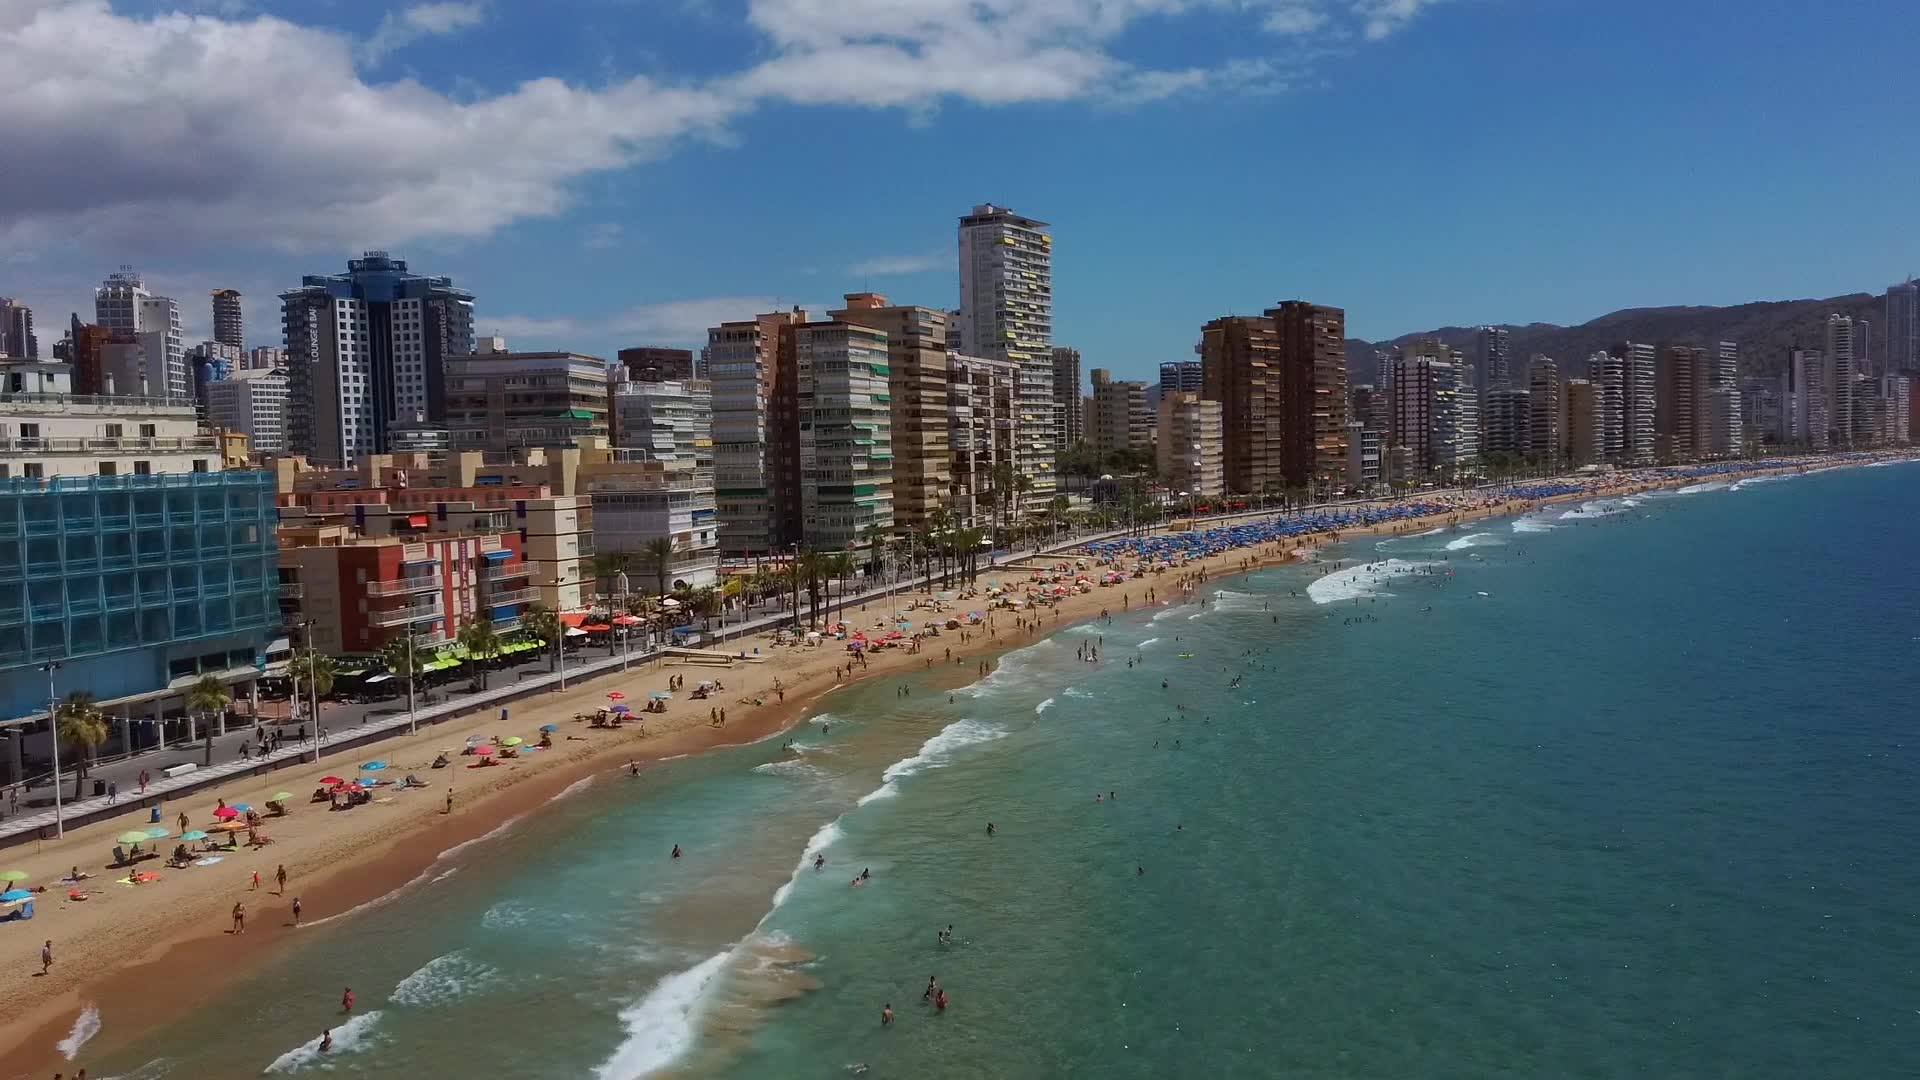 Benidorm COVID-19 infection rate is three times higher than Spain's national average